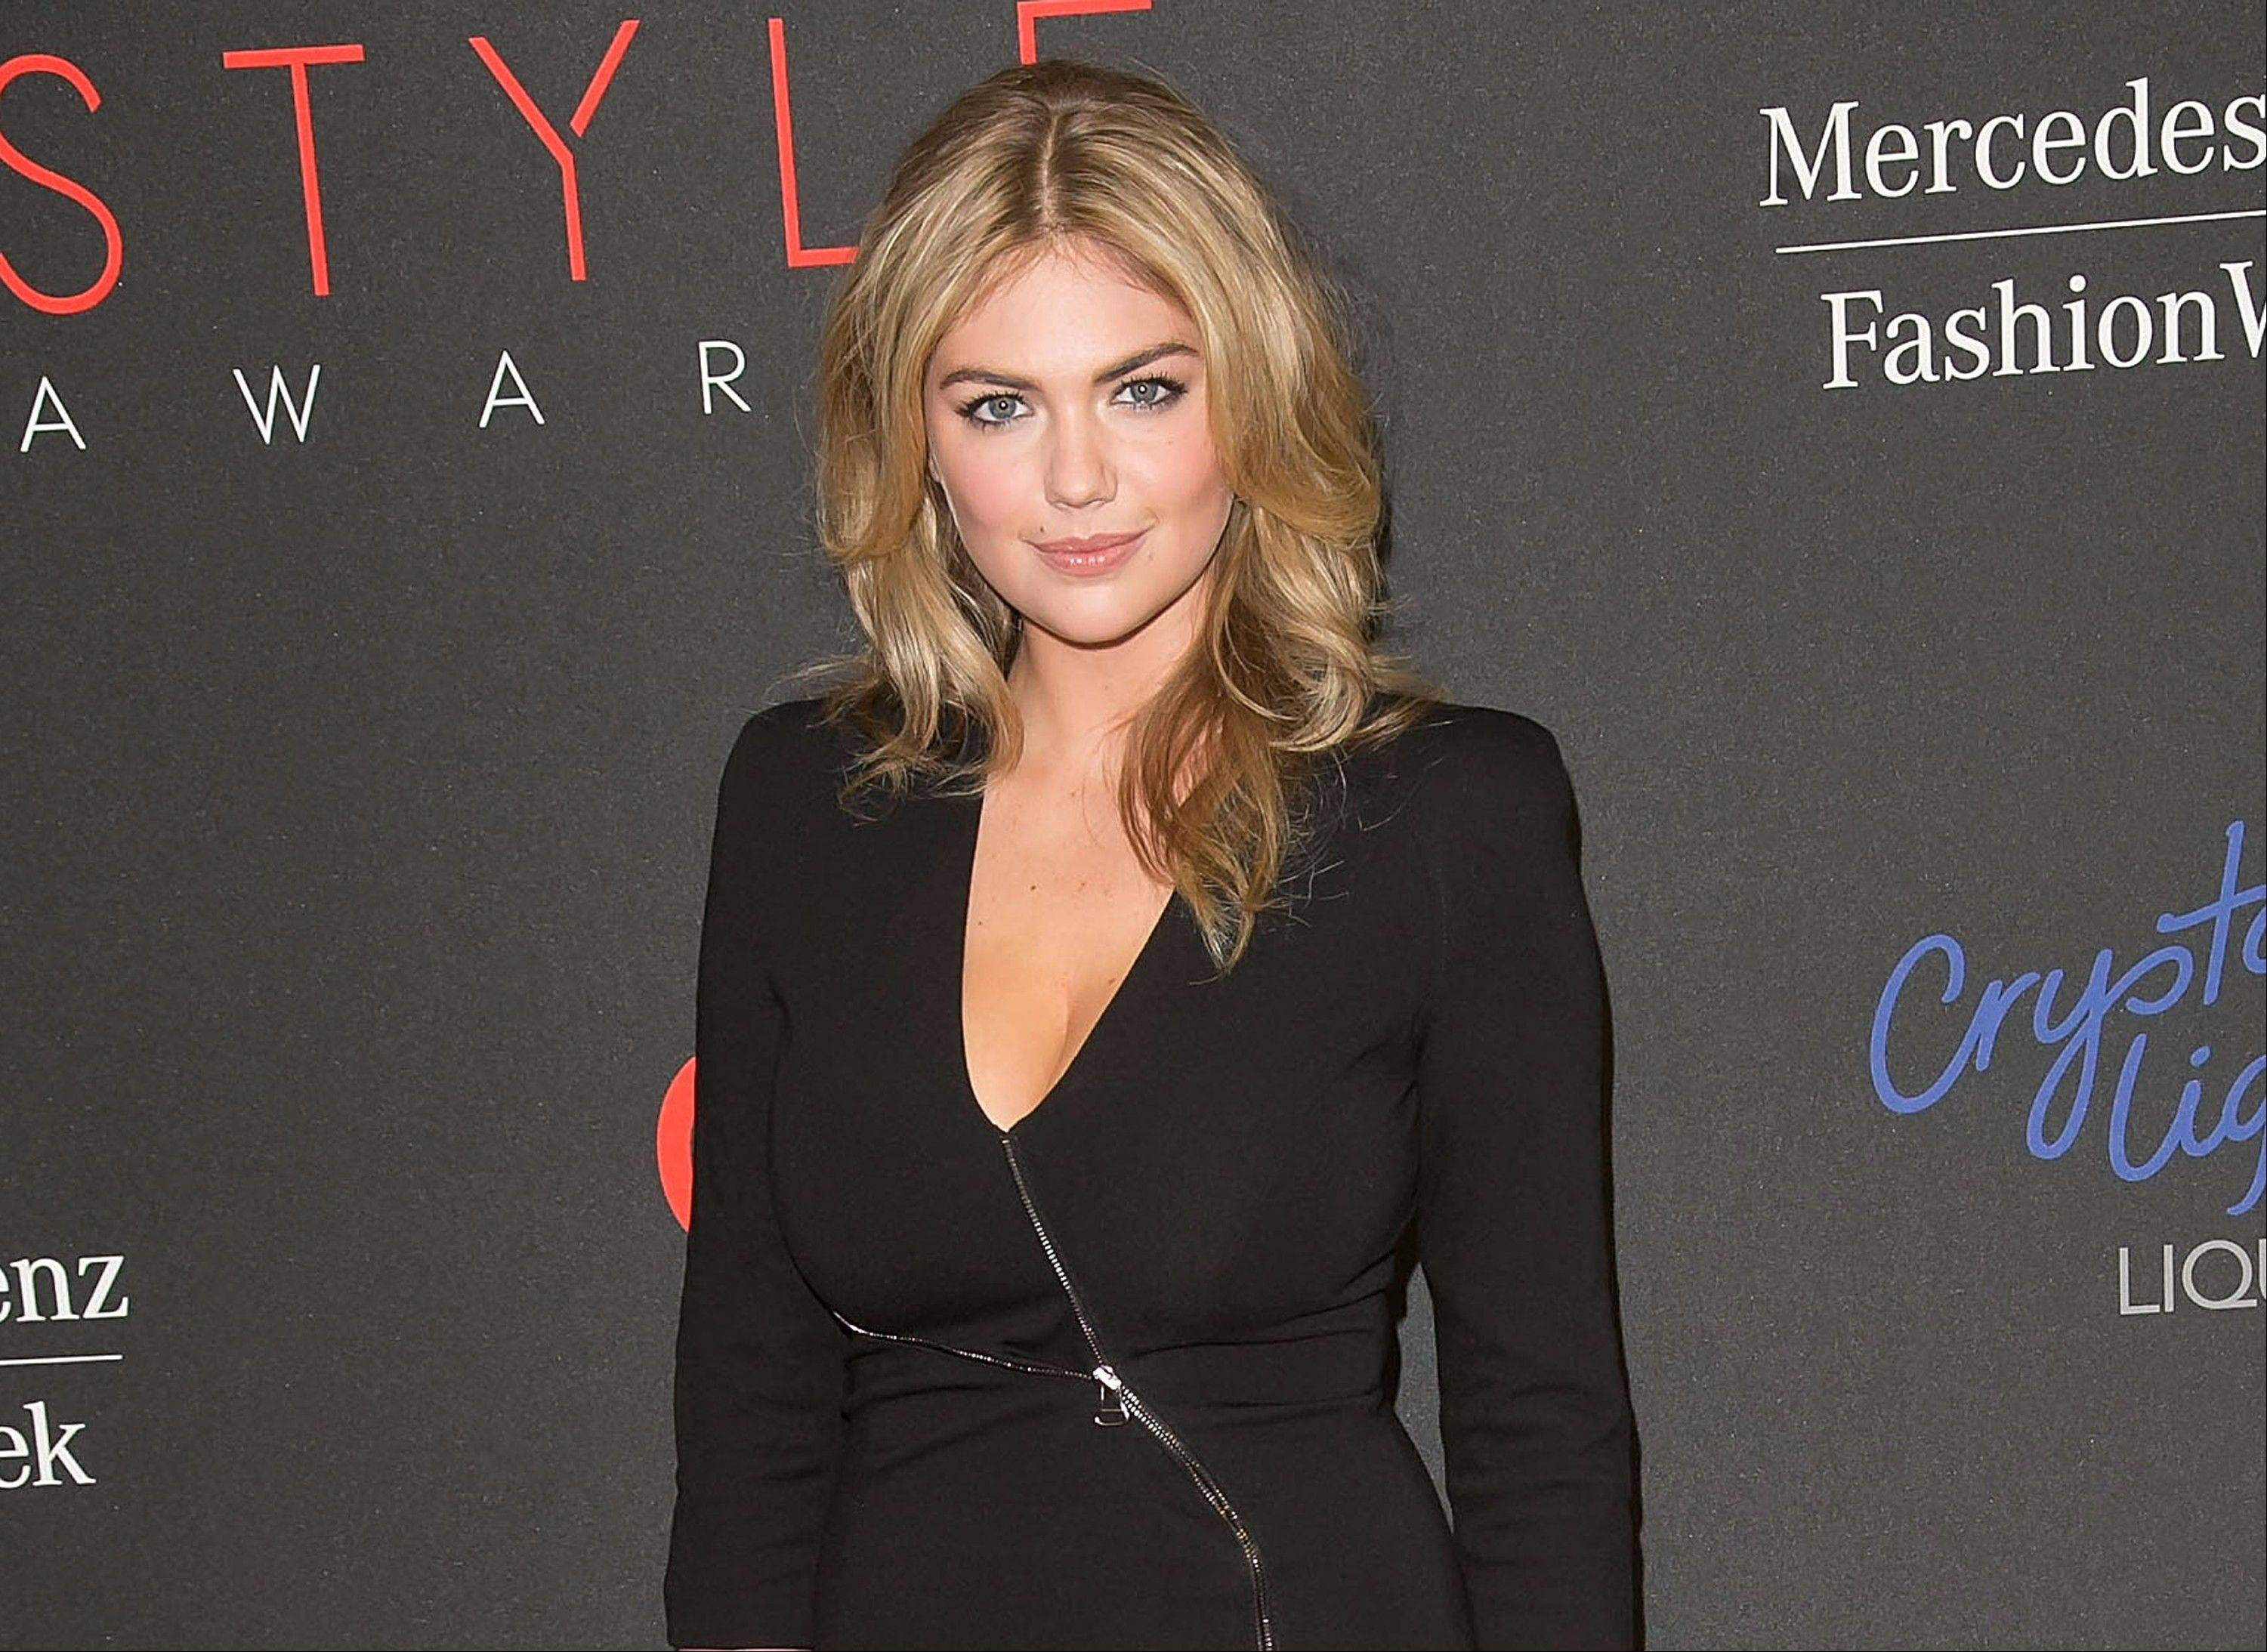 Kate Upton was honored as model of the year at the 2013 Style Awards.